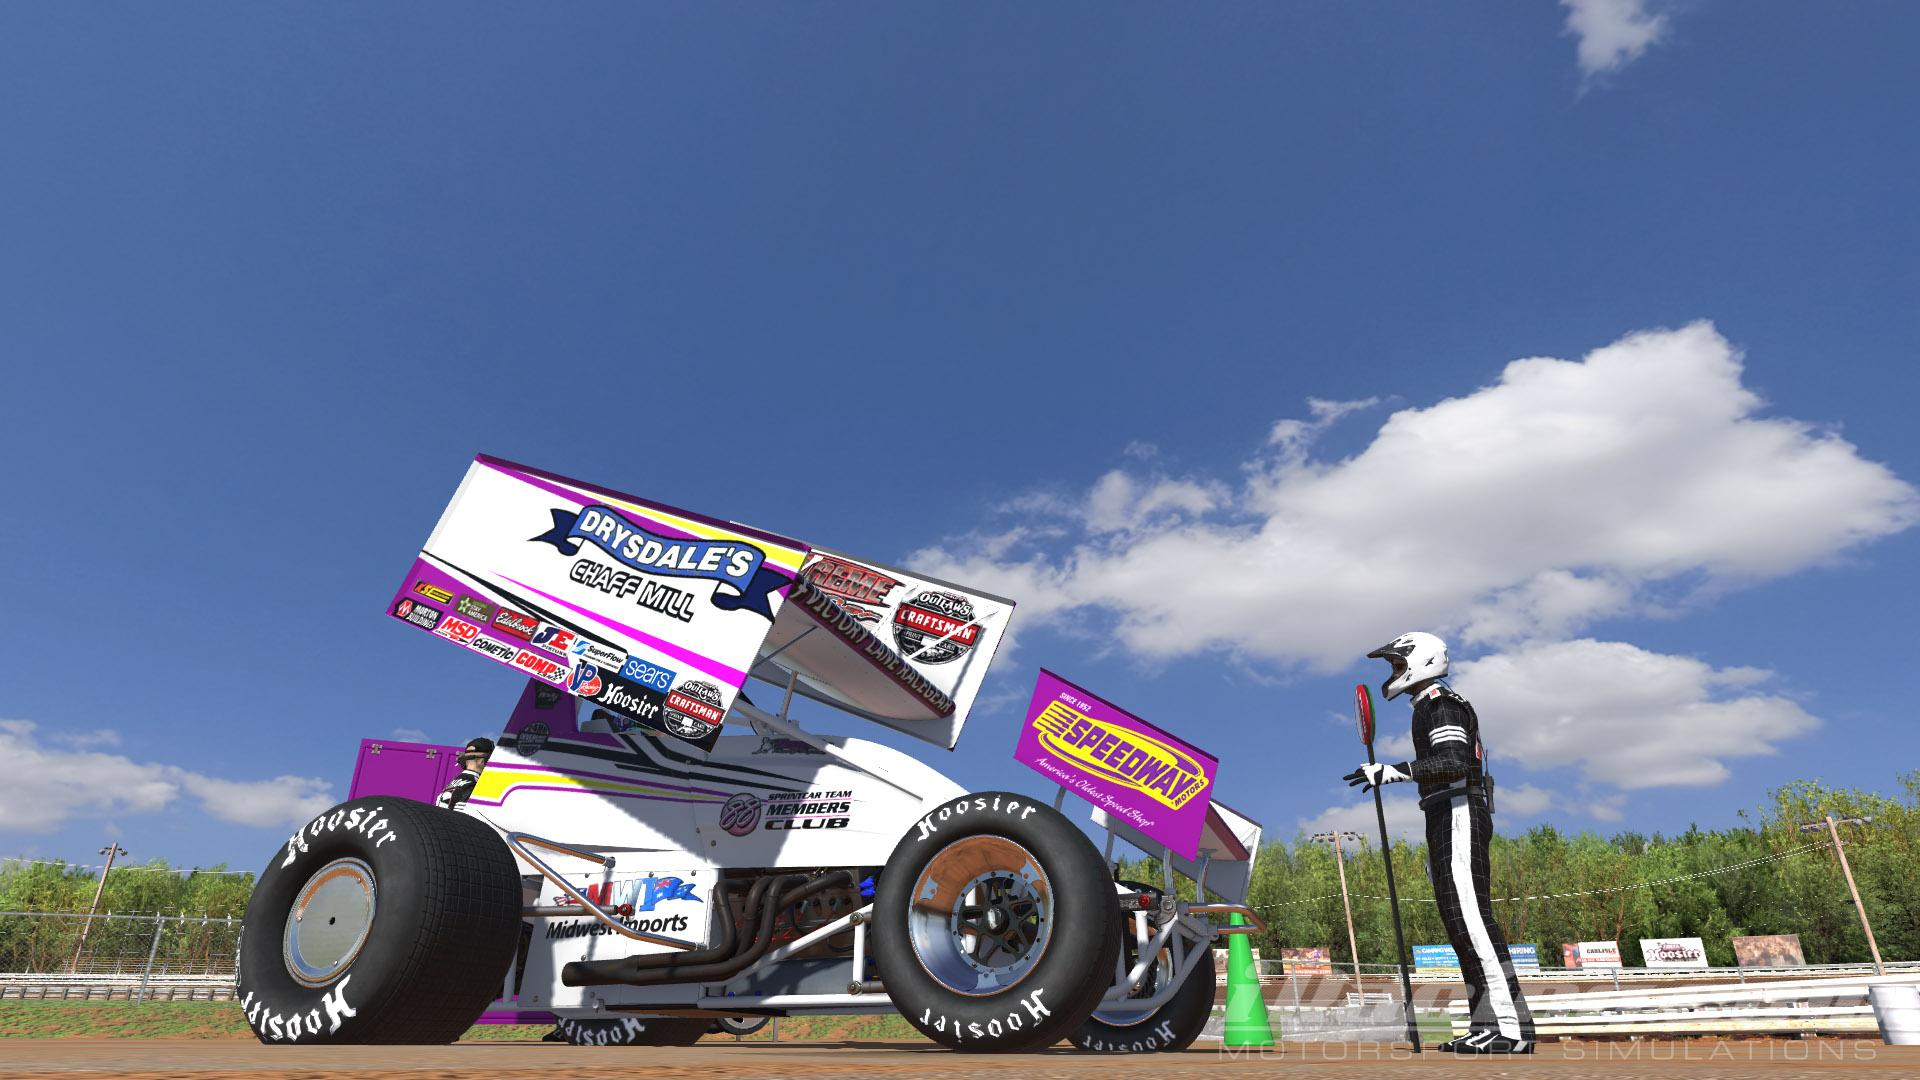 Victory Lane Racegear by Patrick Eastham - Trading Paints